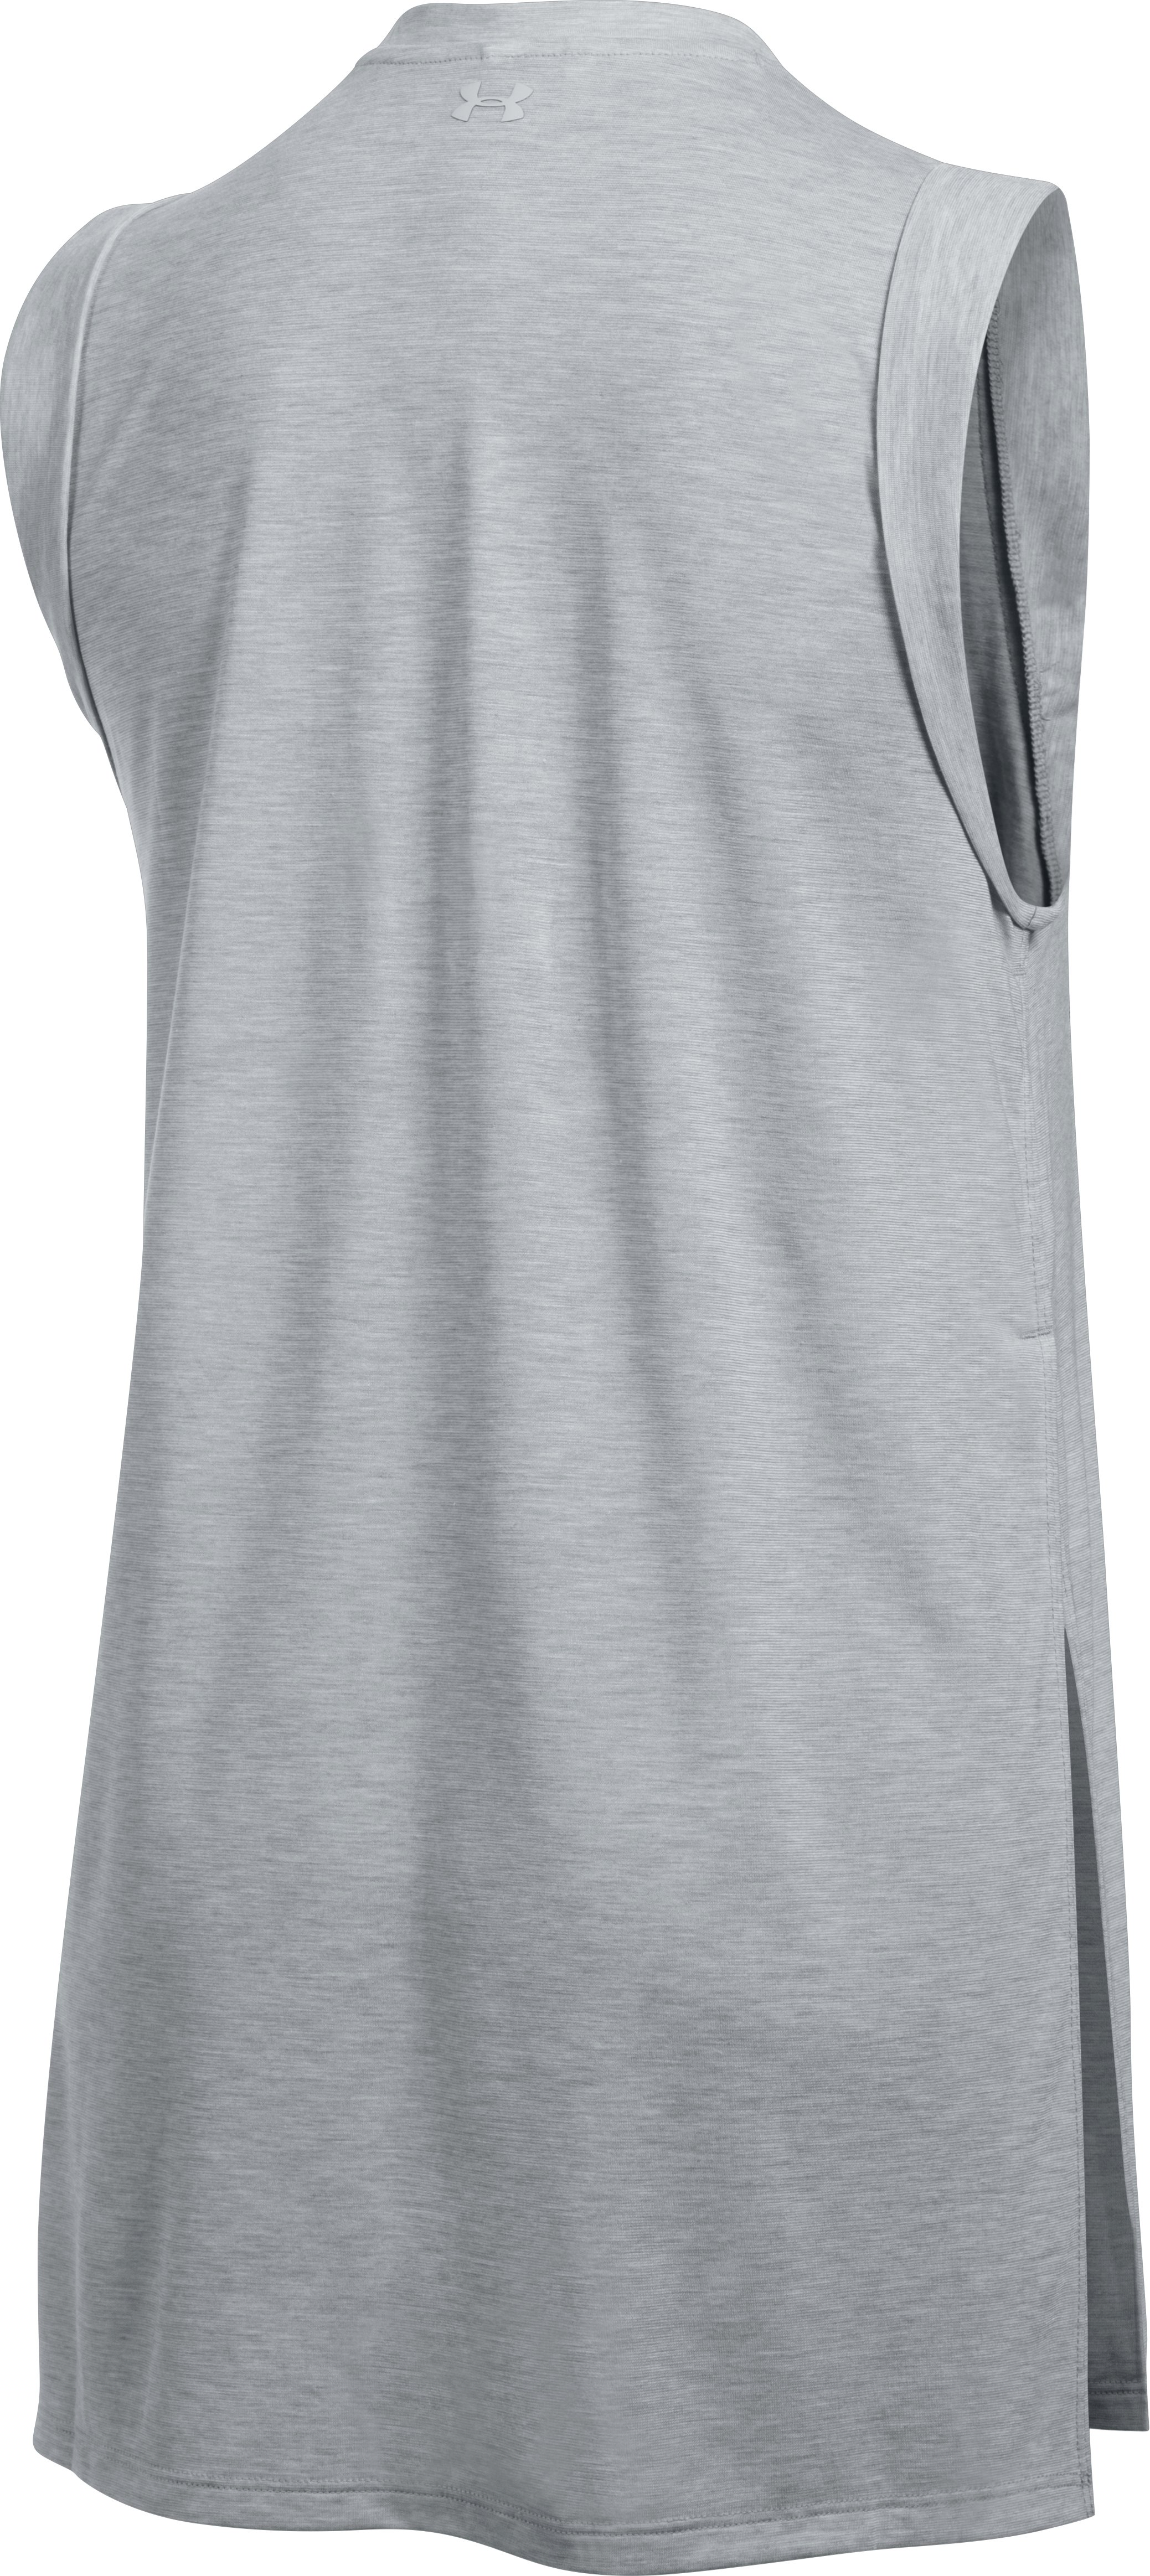 Women's UA Breathe Tunic Tank, True Gray Heather,